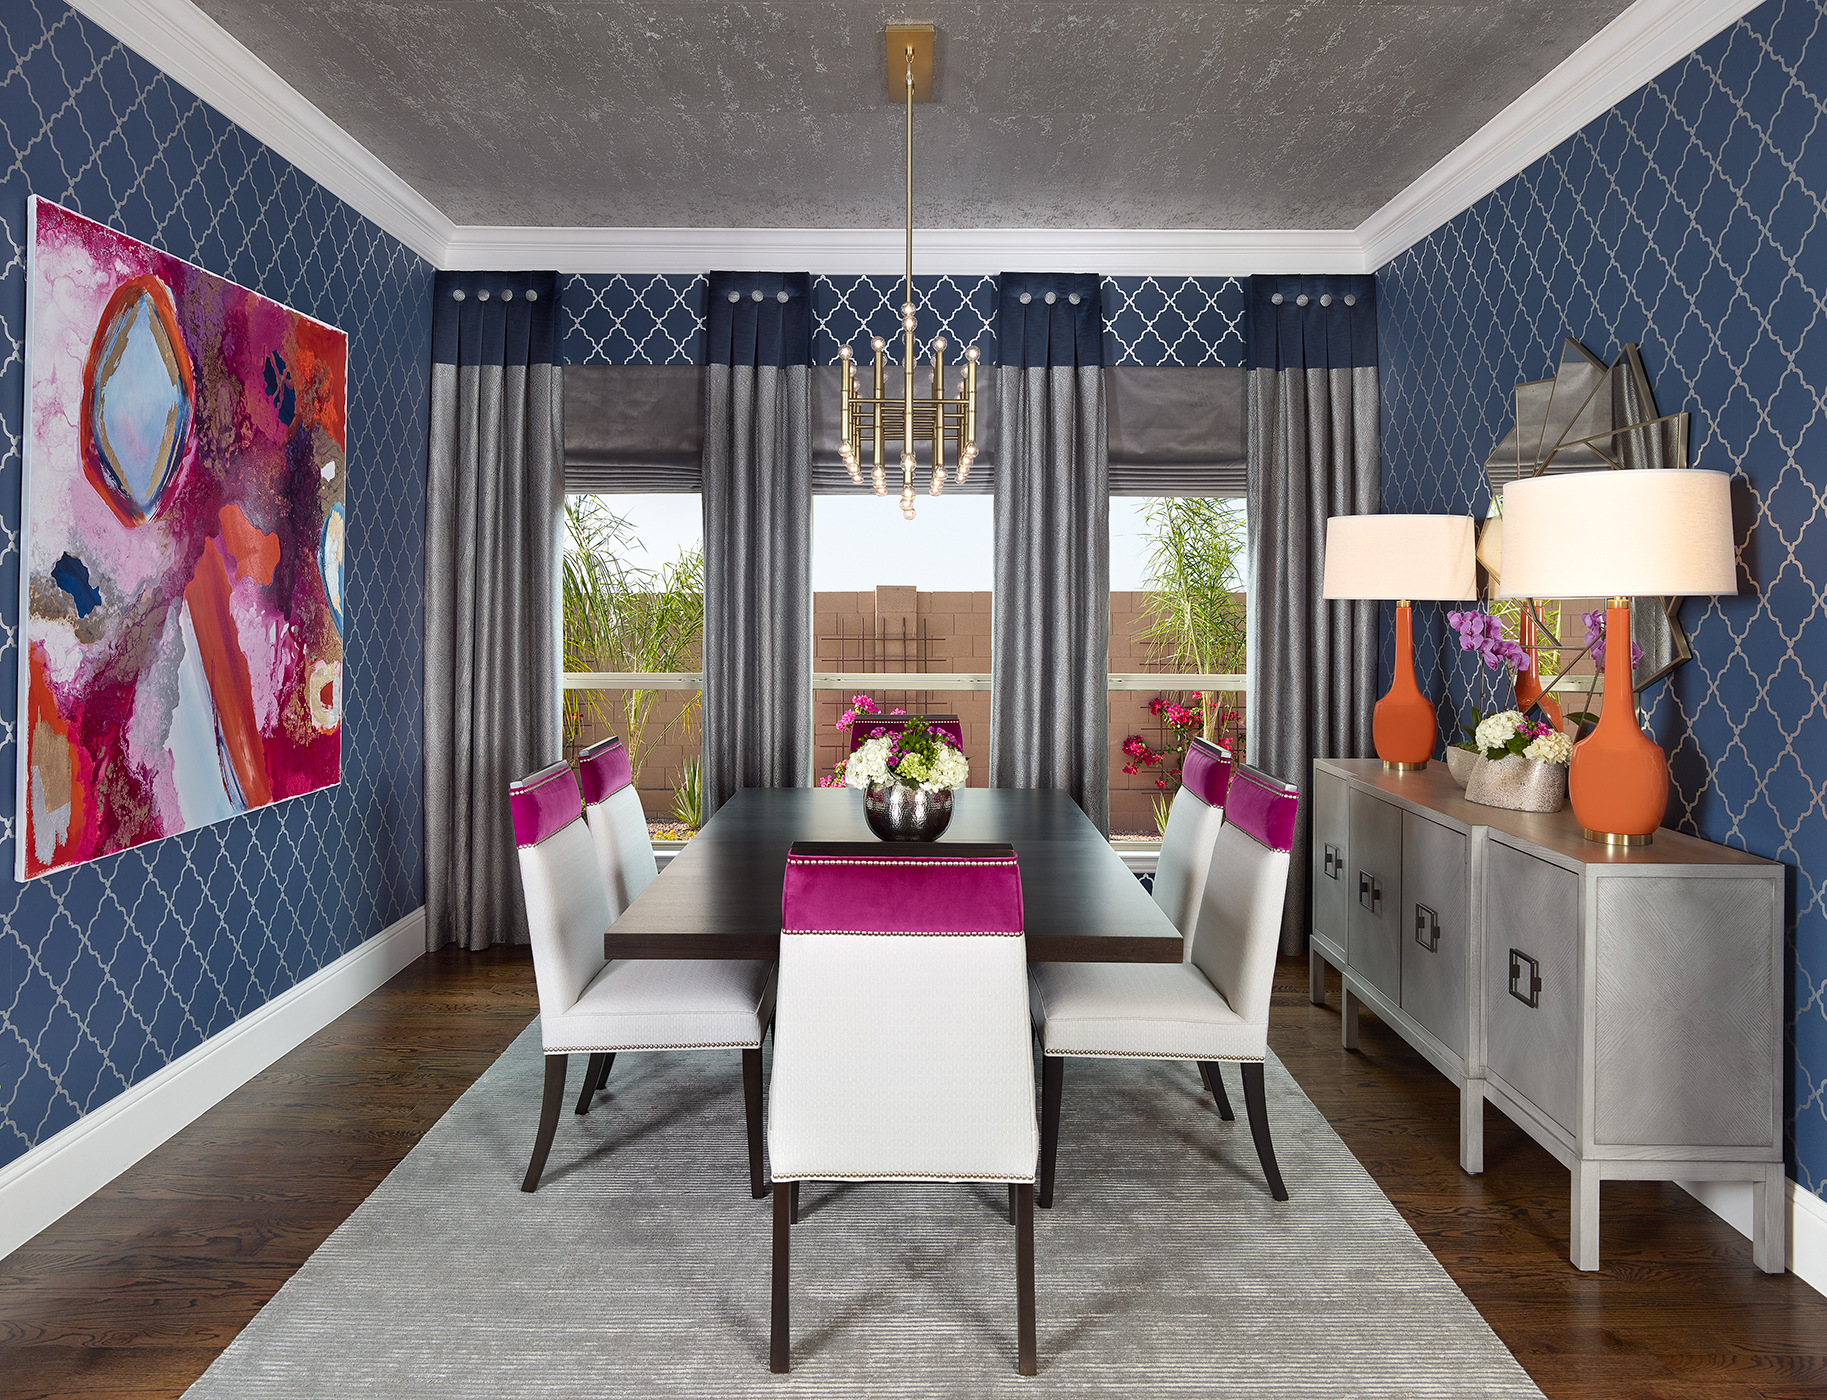 Glamorous dining room with wallpapered walls and ceilings by Barbara Gilbert Interiors